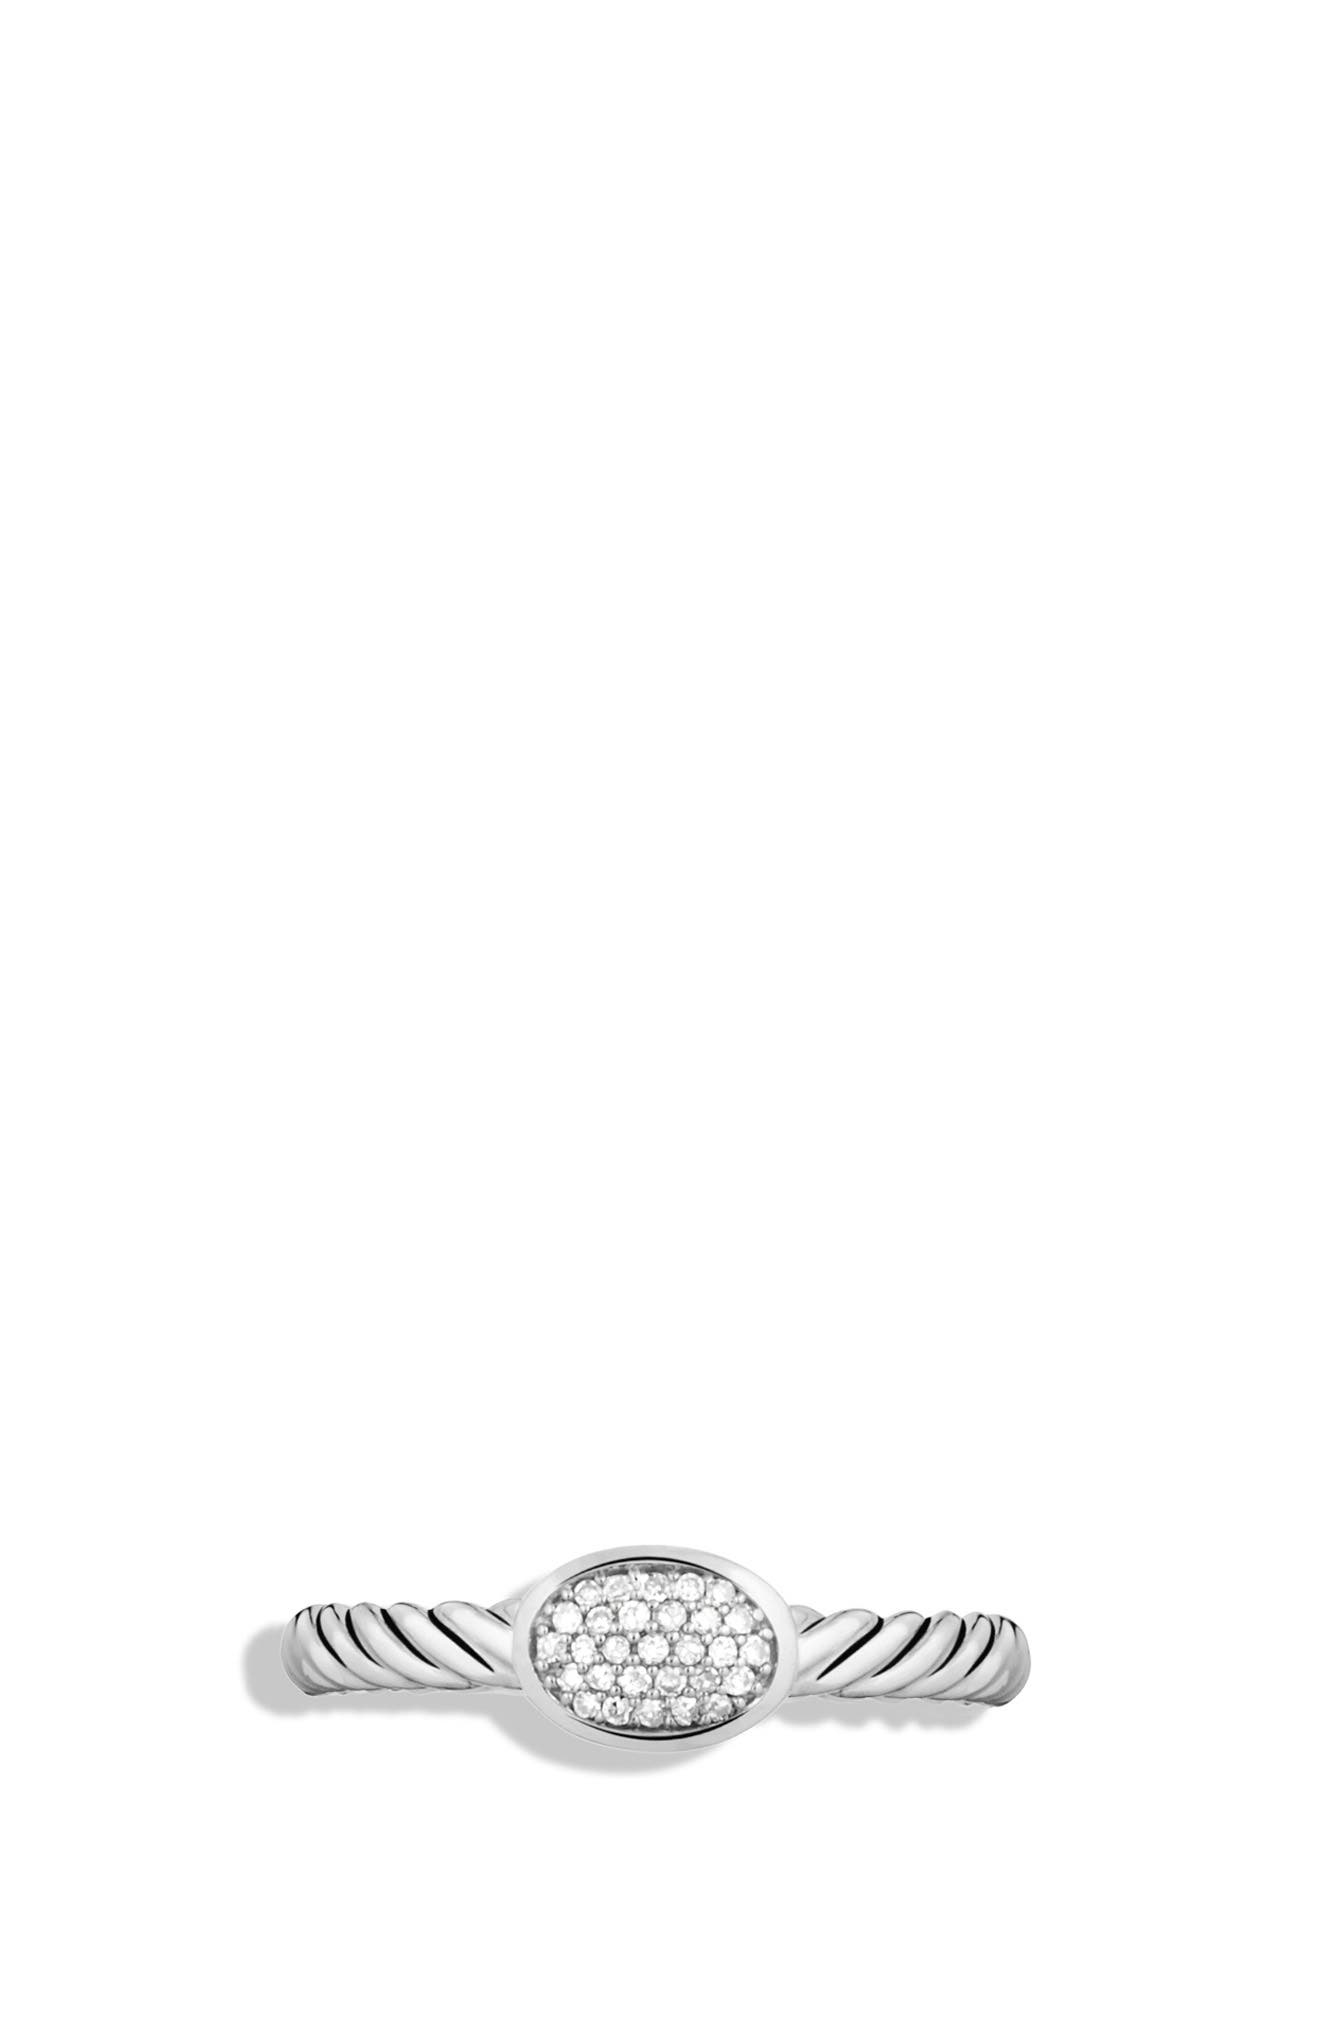 Petite Pavé Oval Ring with Diamonds,                             Alternate thumbnail 3, color,                             Diamond